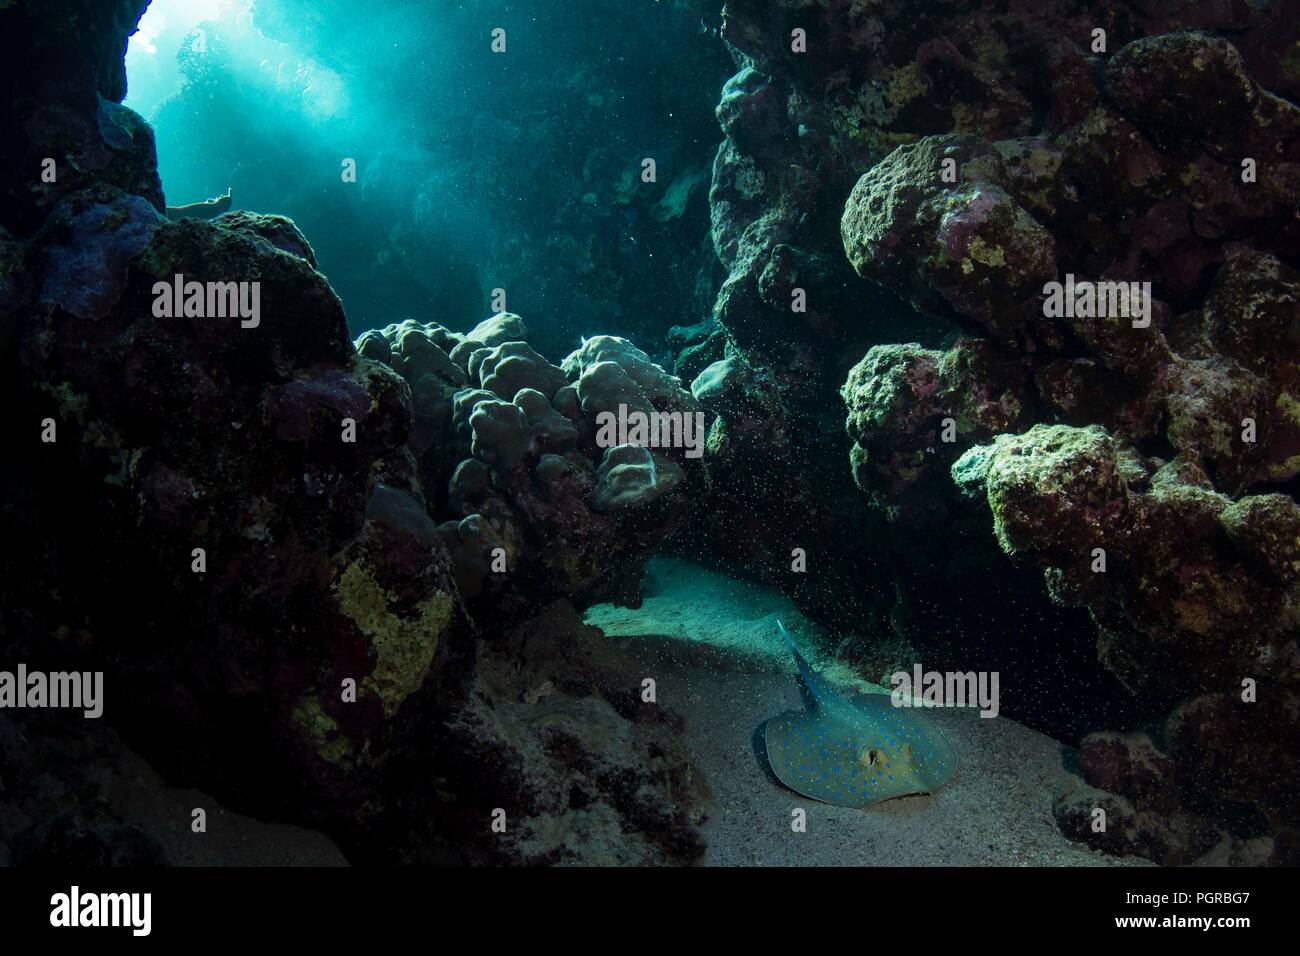 Bluespotted sting ray Neotrygon kuhlii in coral reef Marsa Nakari, Egypt. - Stock Image